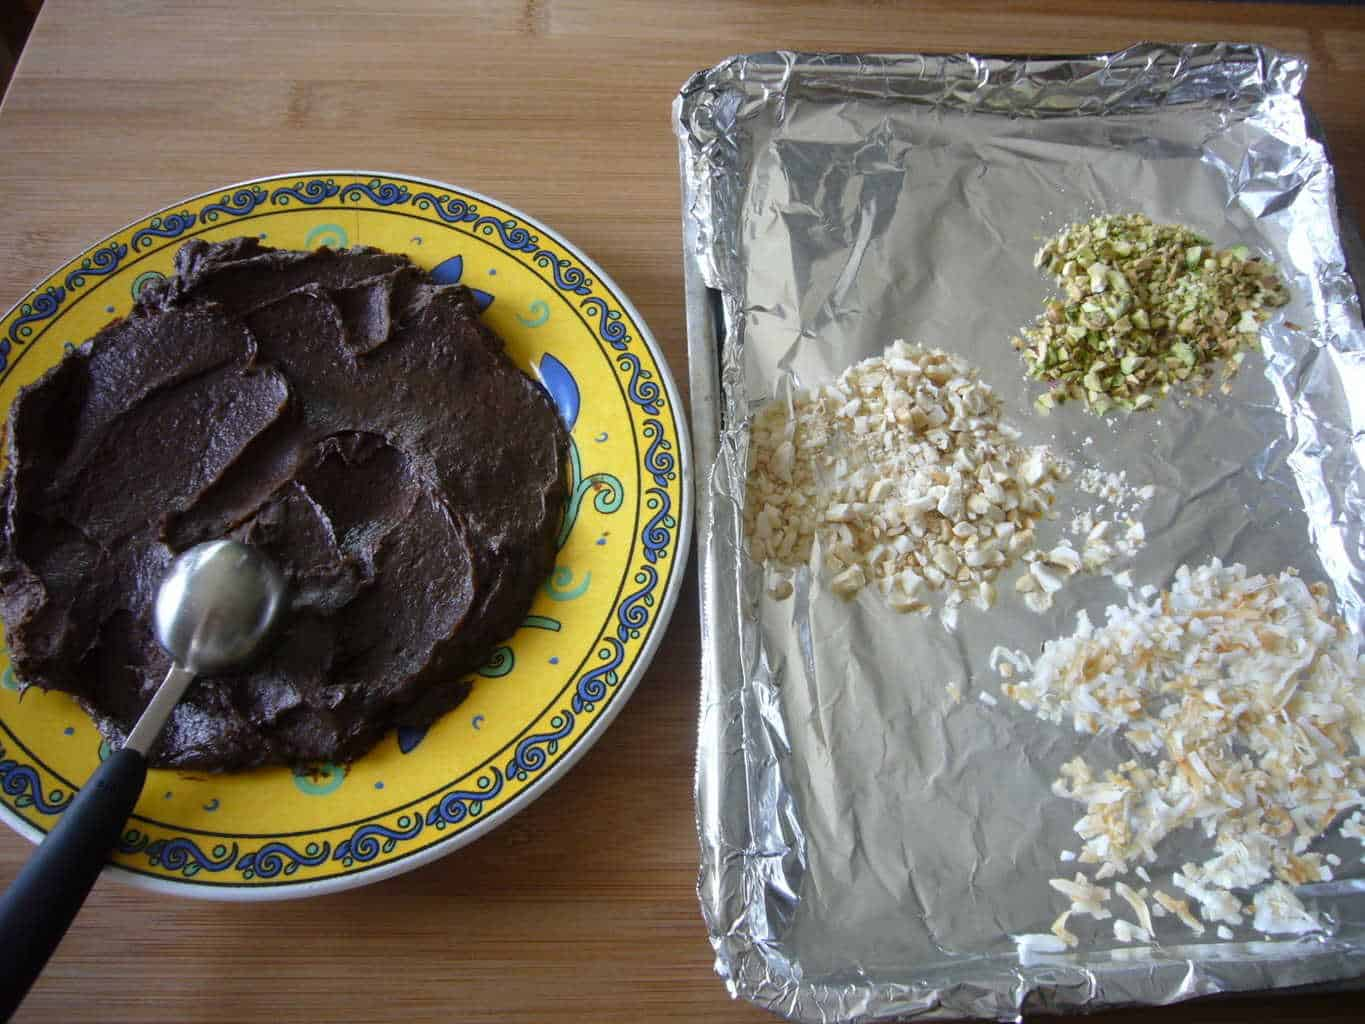 The truffle mixture and the toppings for avocado chocolate truffles